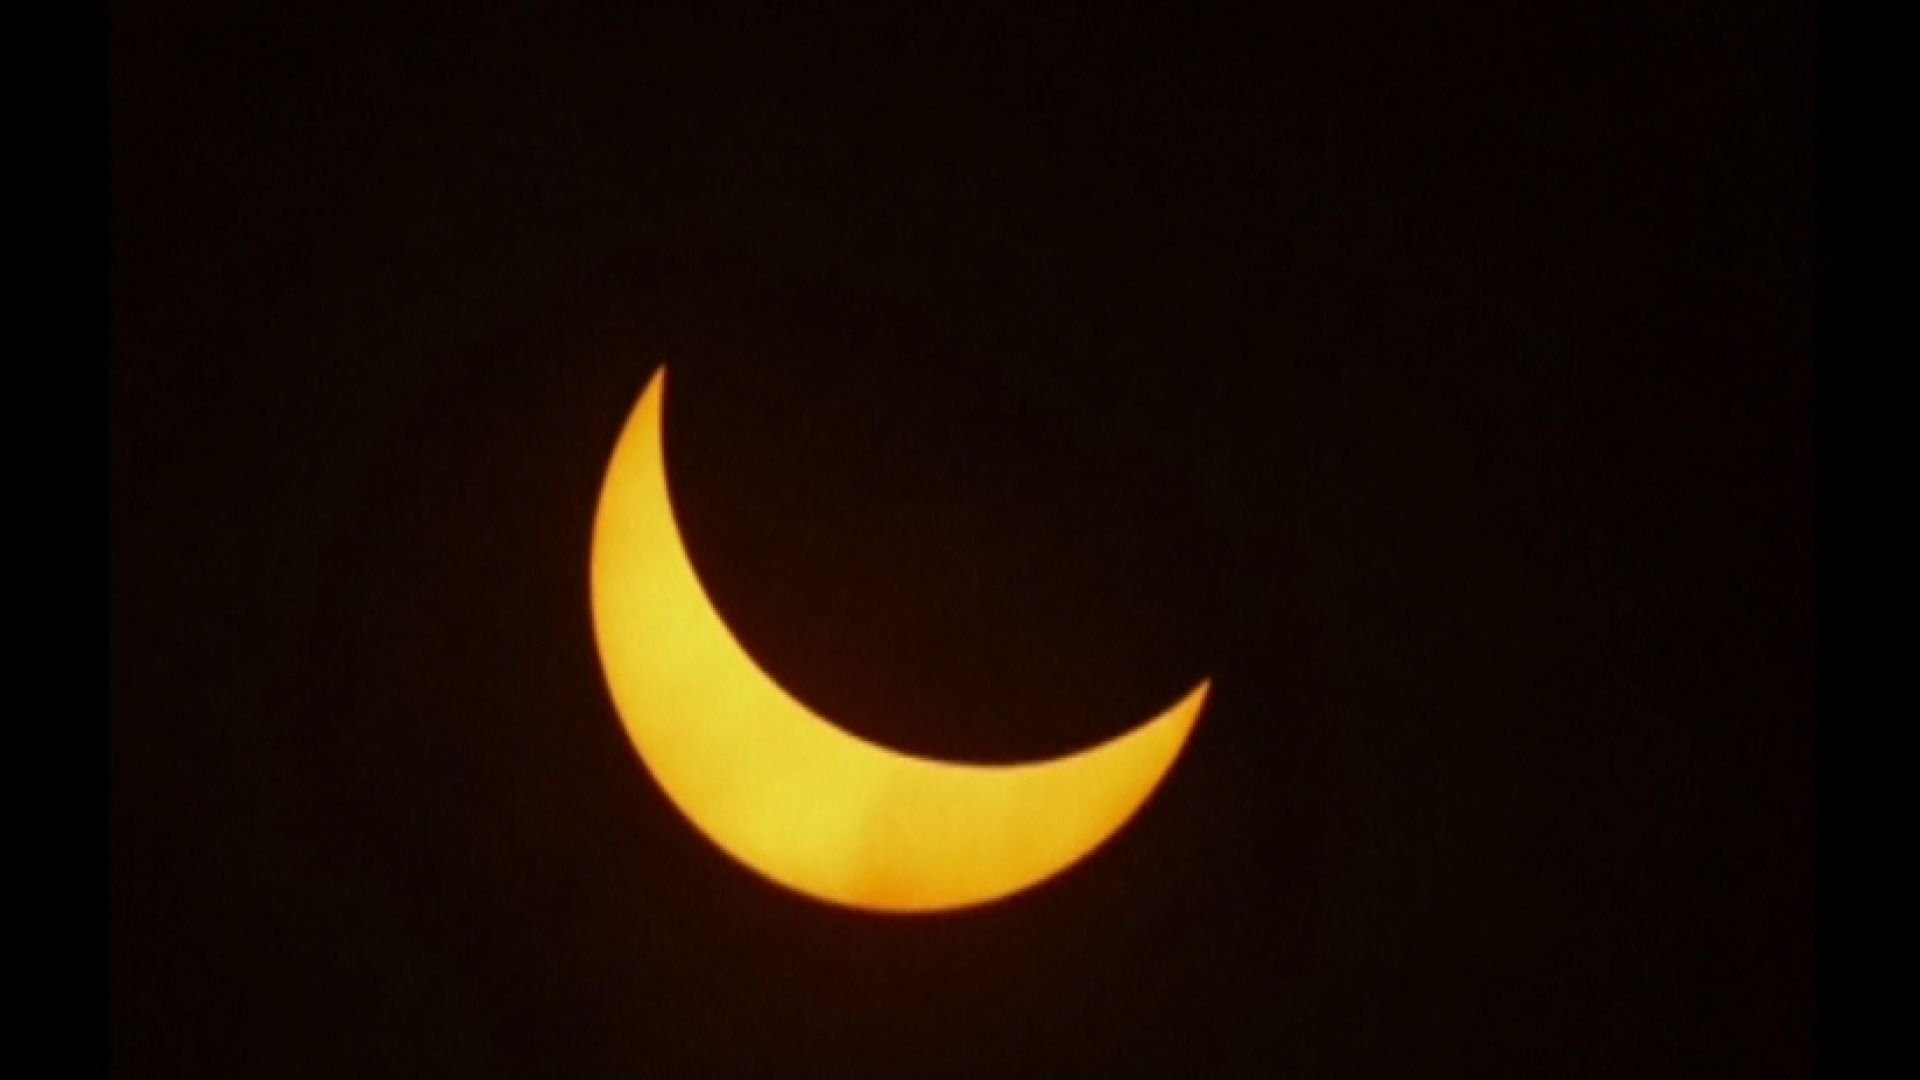 How to capture the eclipse like a professional.